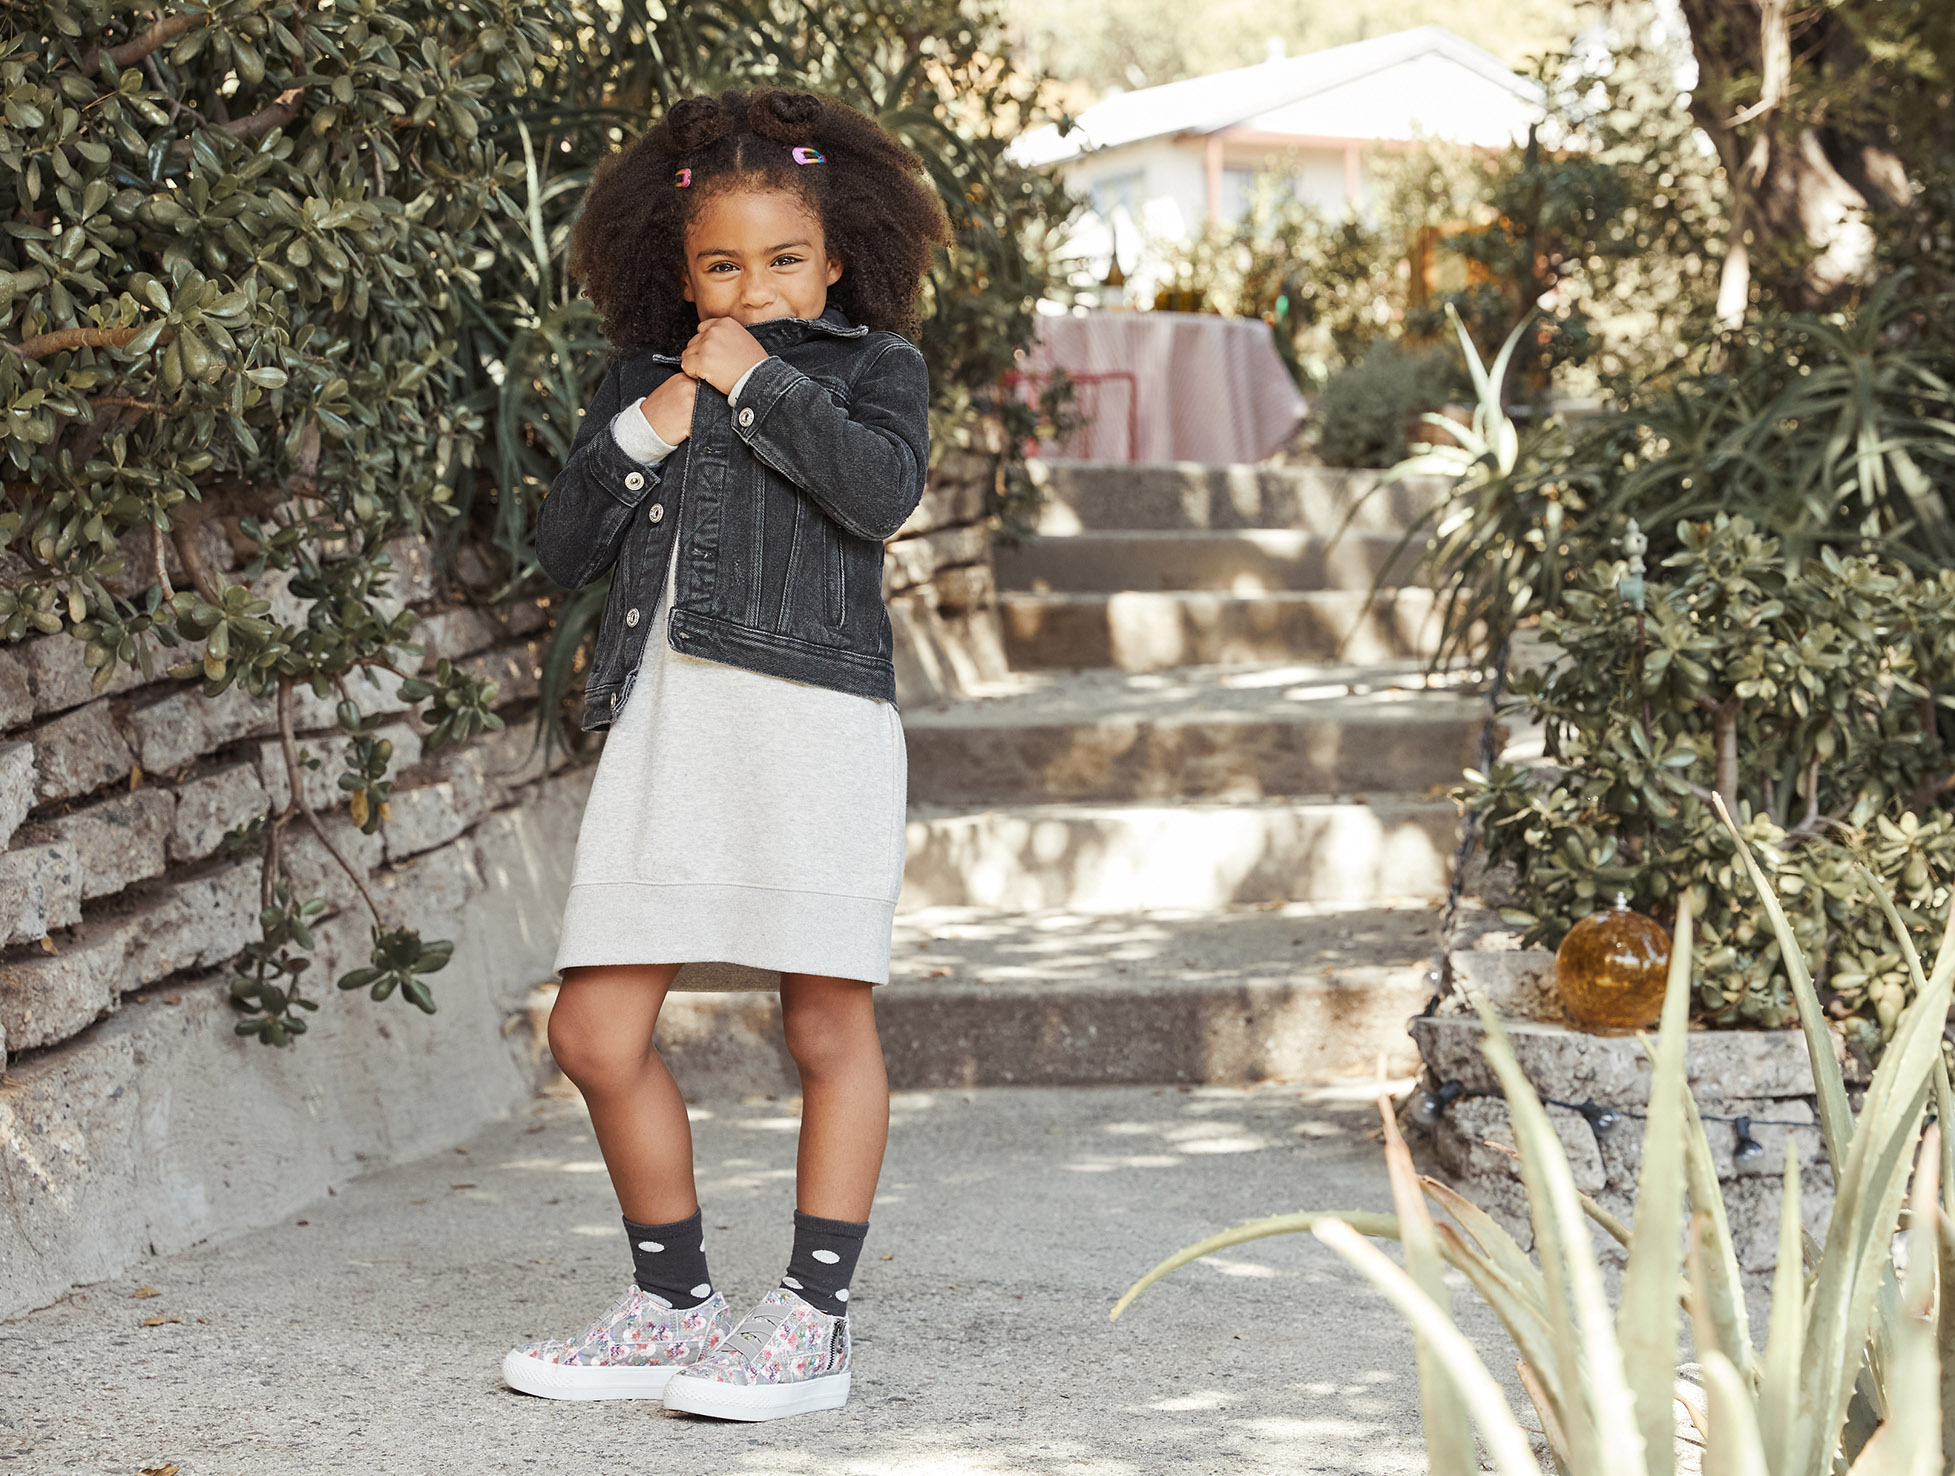 https://blowfishshoes.com/wp-content/uploads/2020/09/FW20-Kids-Collection.jpg